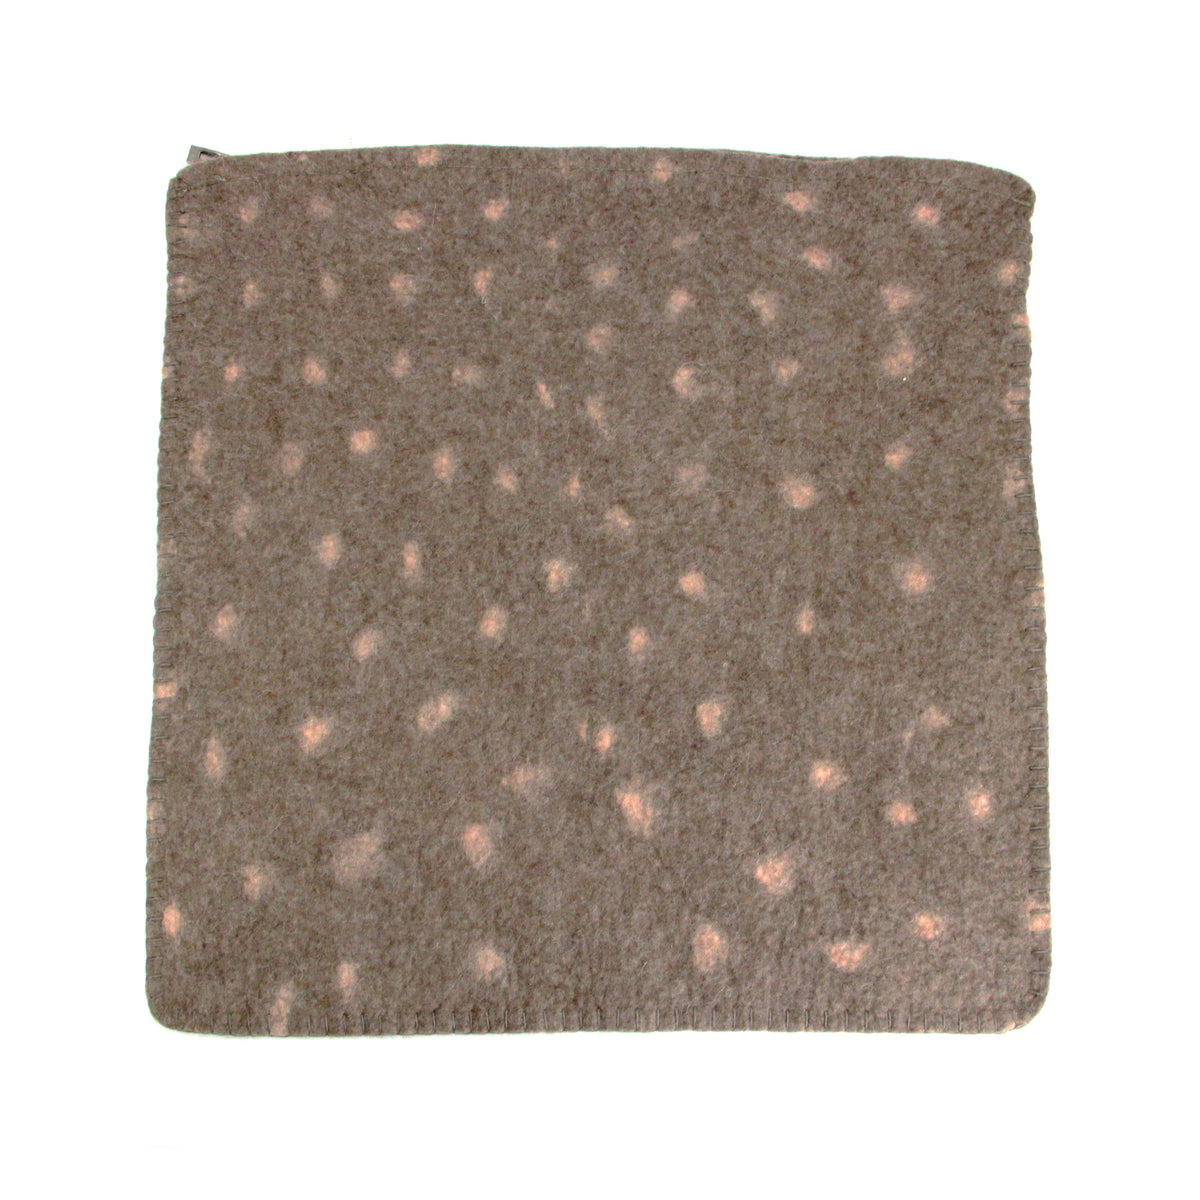 Hug Felted Polkadot Cushion Cover - Brown